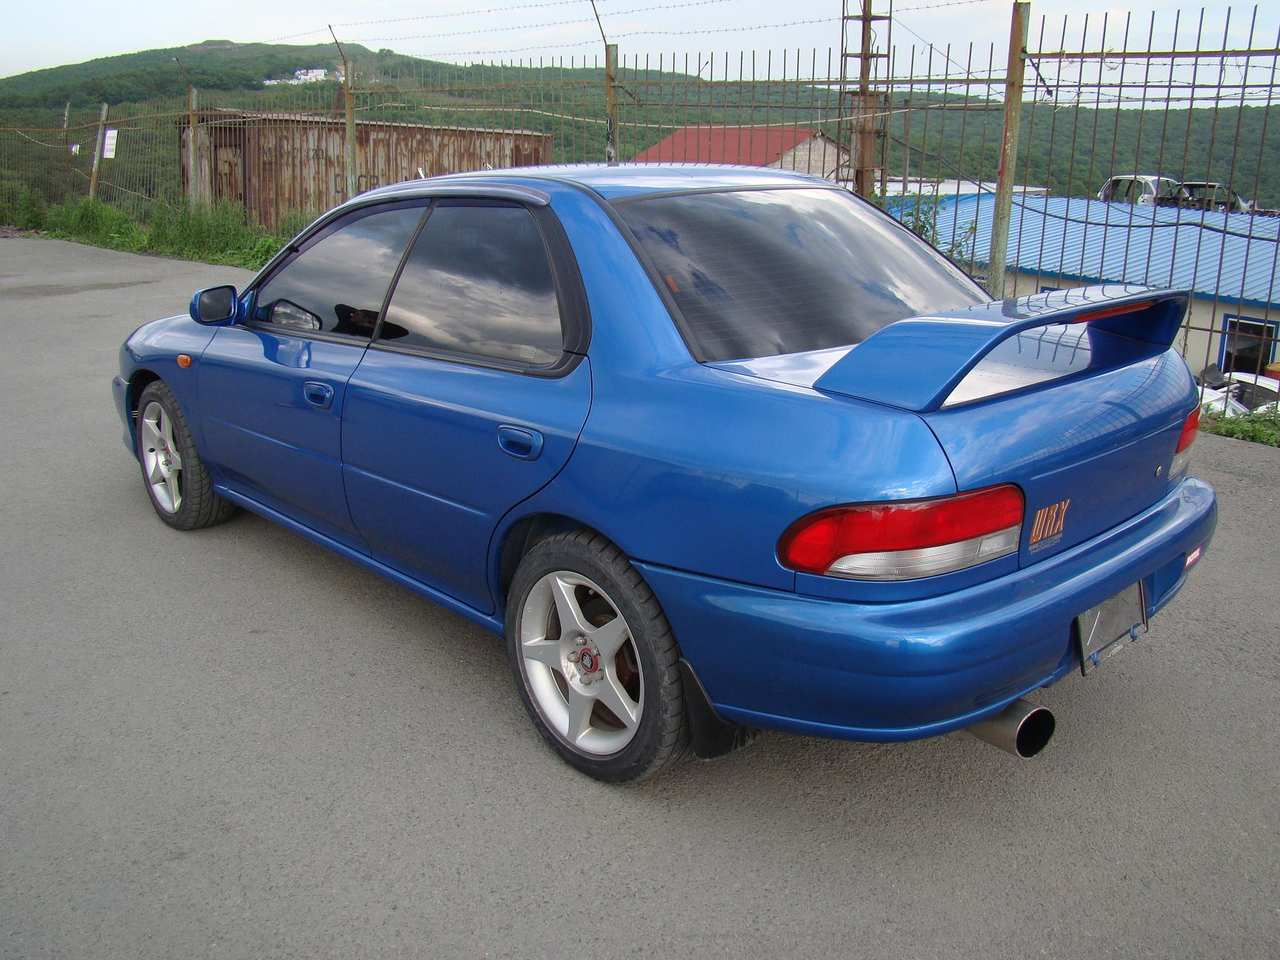 1999 subaru impreza wrx sti pictures gasoline. Black Bedroom Furniture Sets. Home Design Ideas